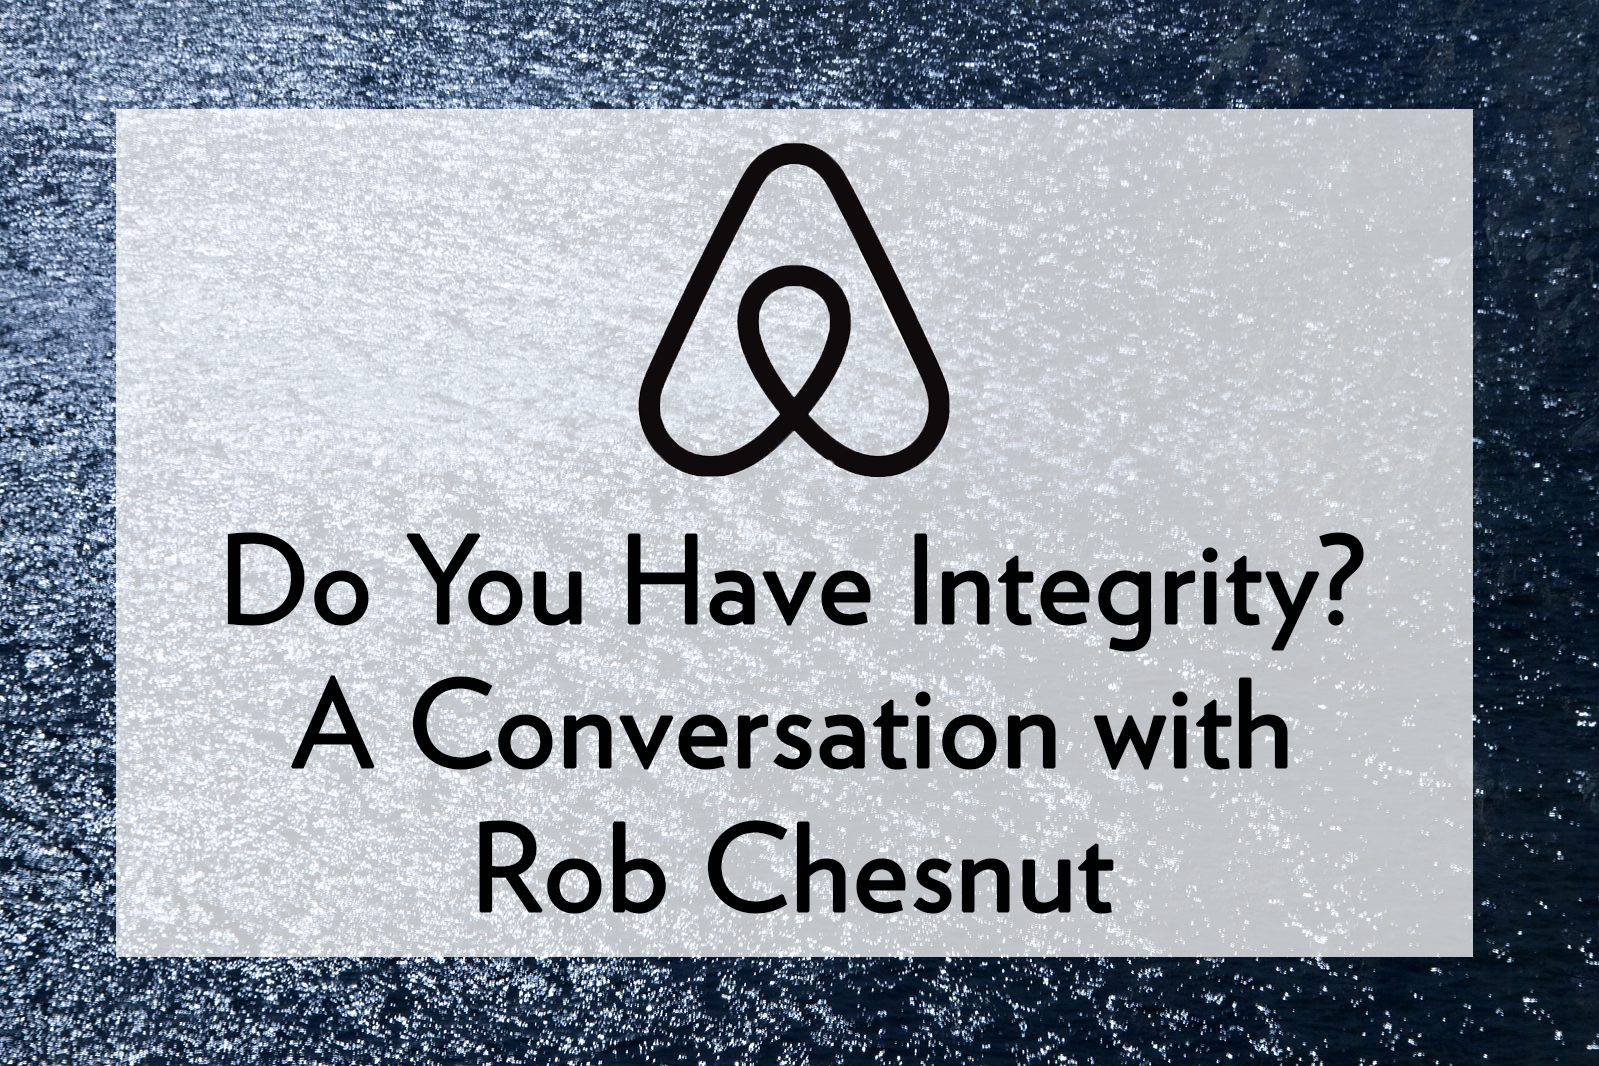 Do You Have Integrity? A Conversation with Rob Chesnut